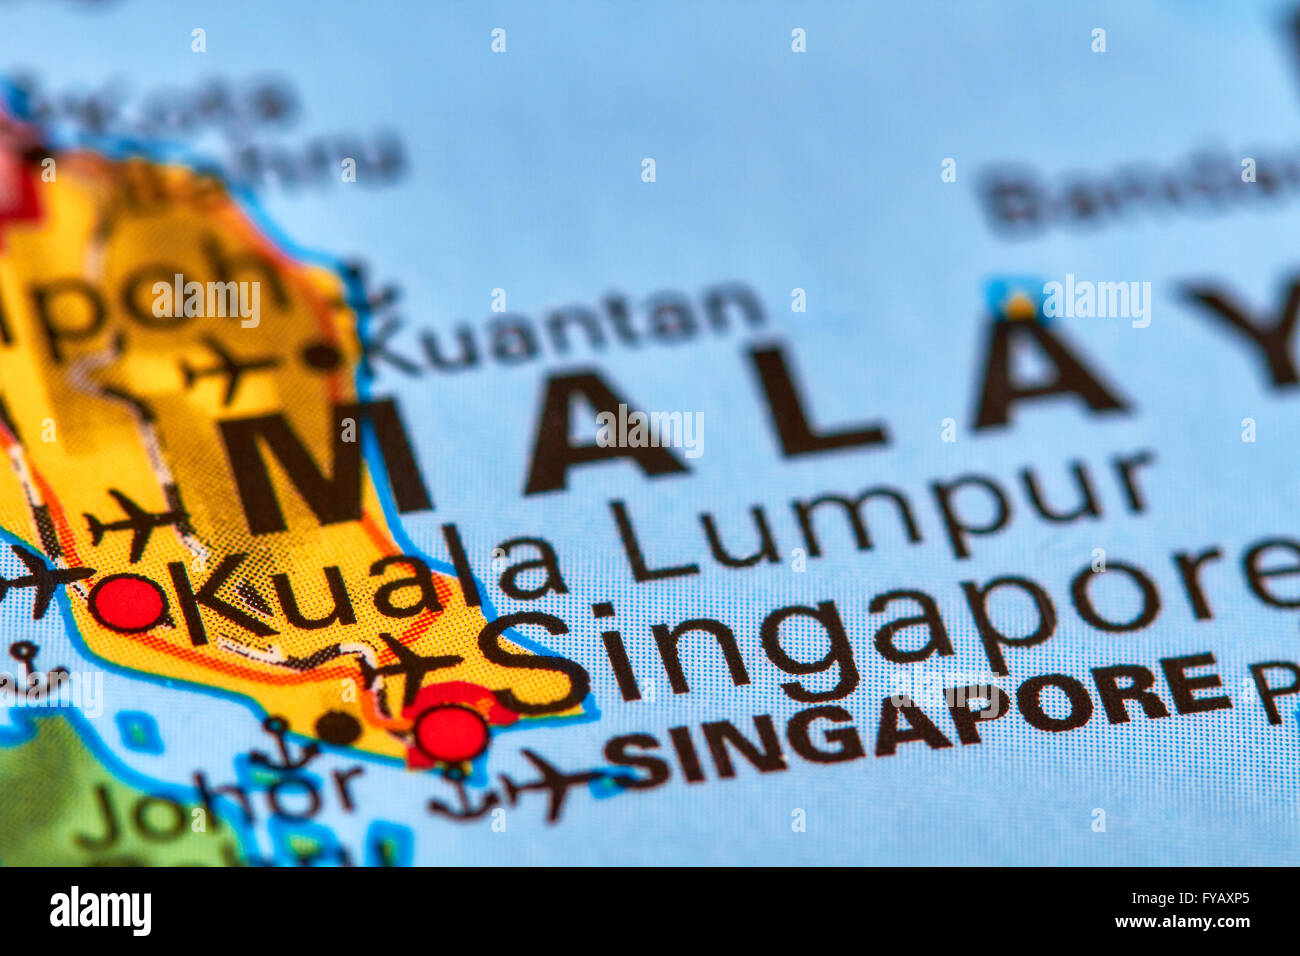 Kuala lumpur capital city of malaysia on the world map stock photo kuala lumpur capital city of malaysia on the world map gumiabroncs Gallery